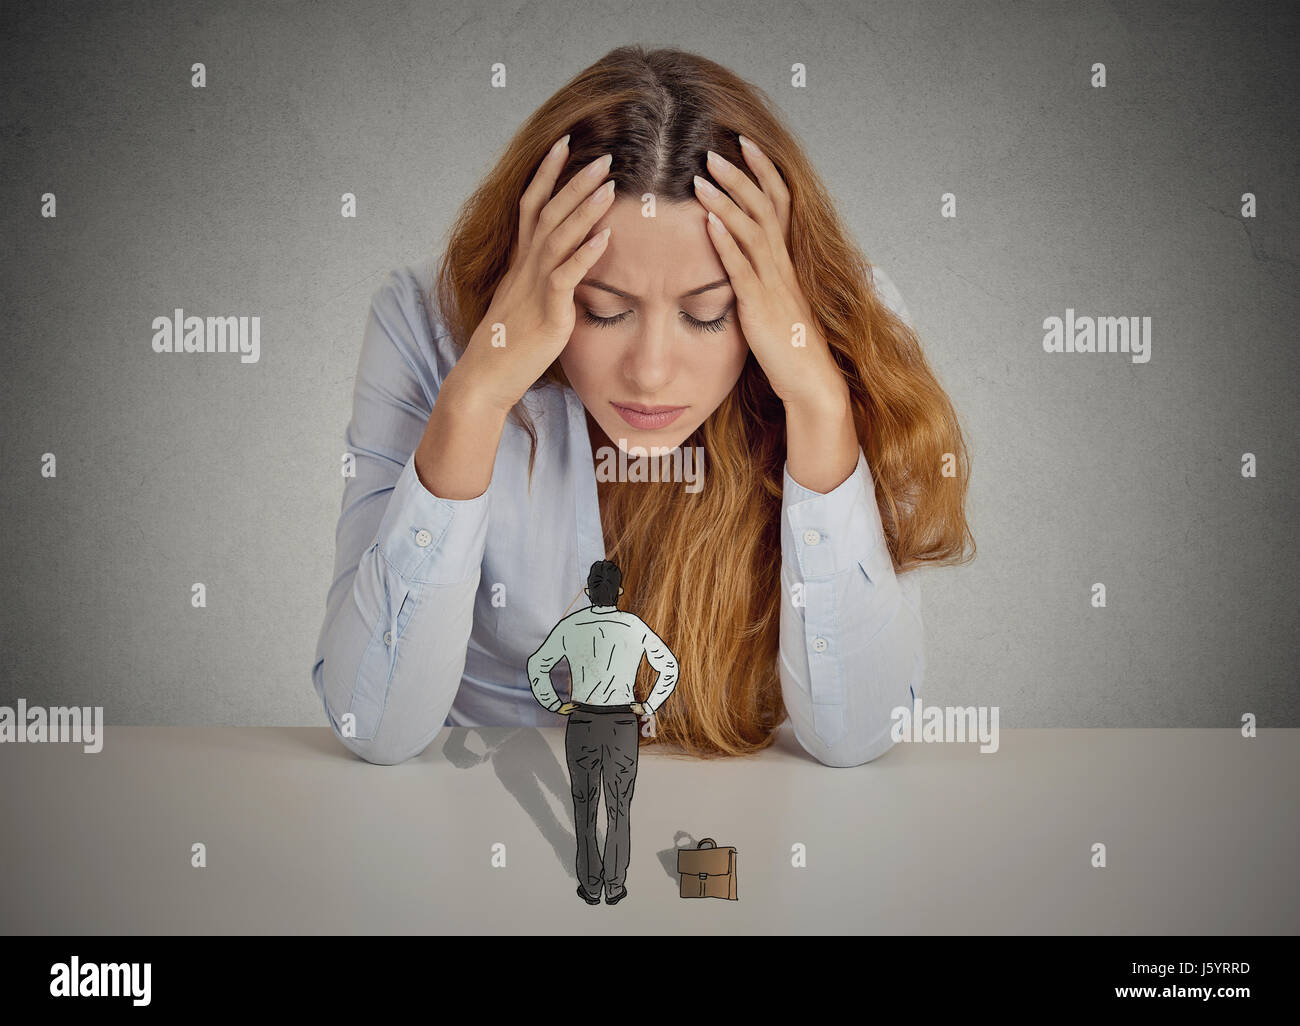 Desperate stressed business woman leaning on a desk small bossy executive man patronizing her. Negative human emotions - Stock Image